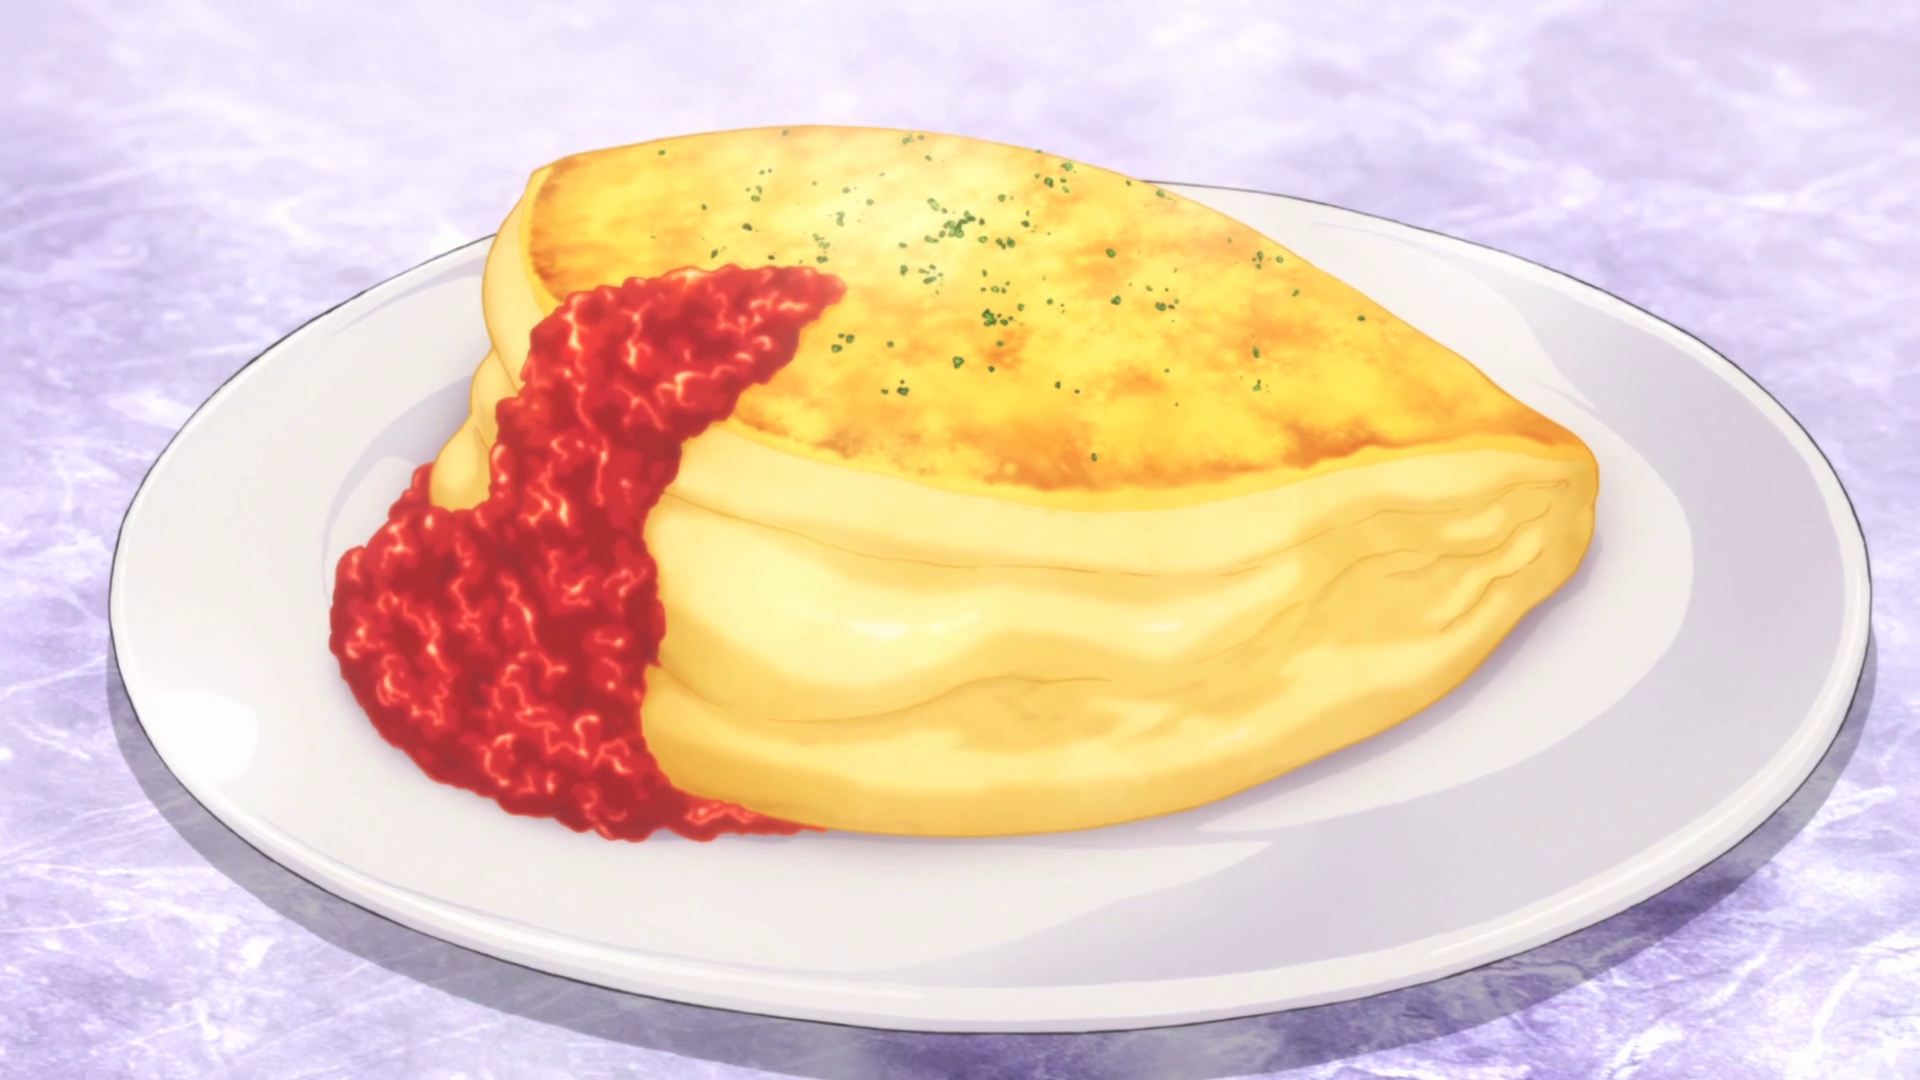 Mini souffl omelette shokugeki no soma wiki fandom powered by wikia mini souffl omelette forumfinder Images